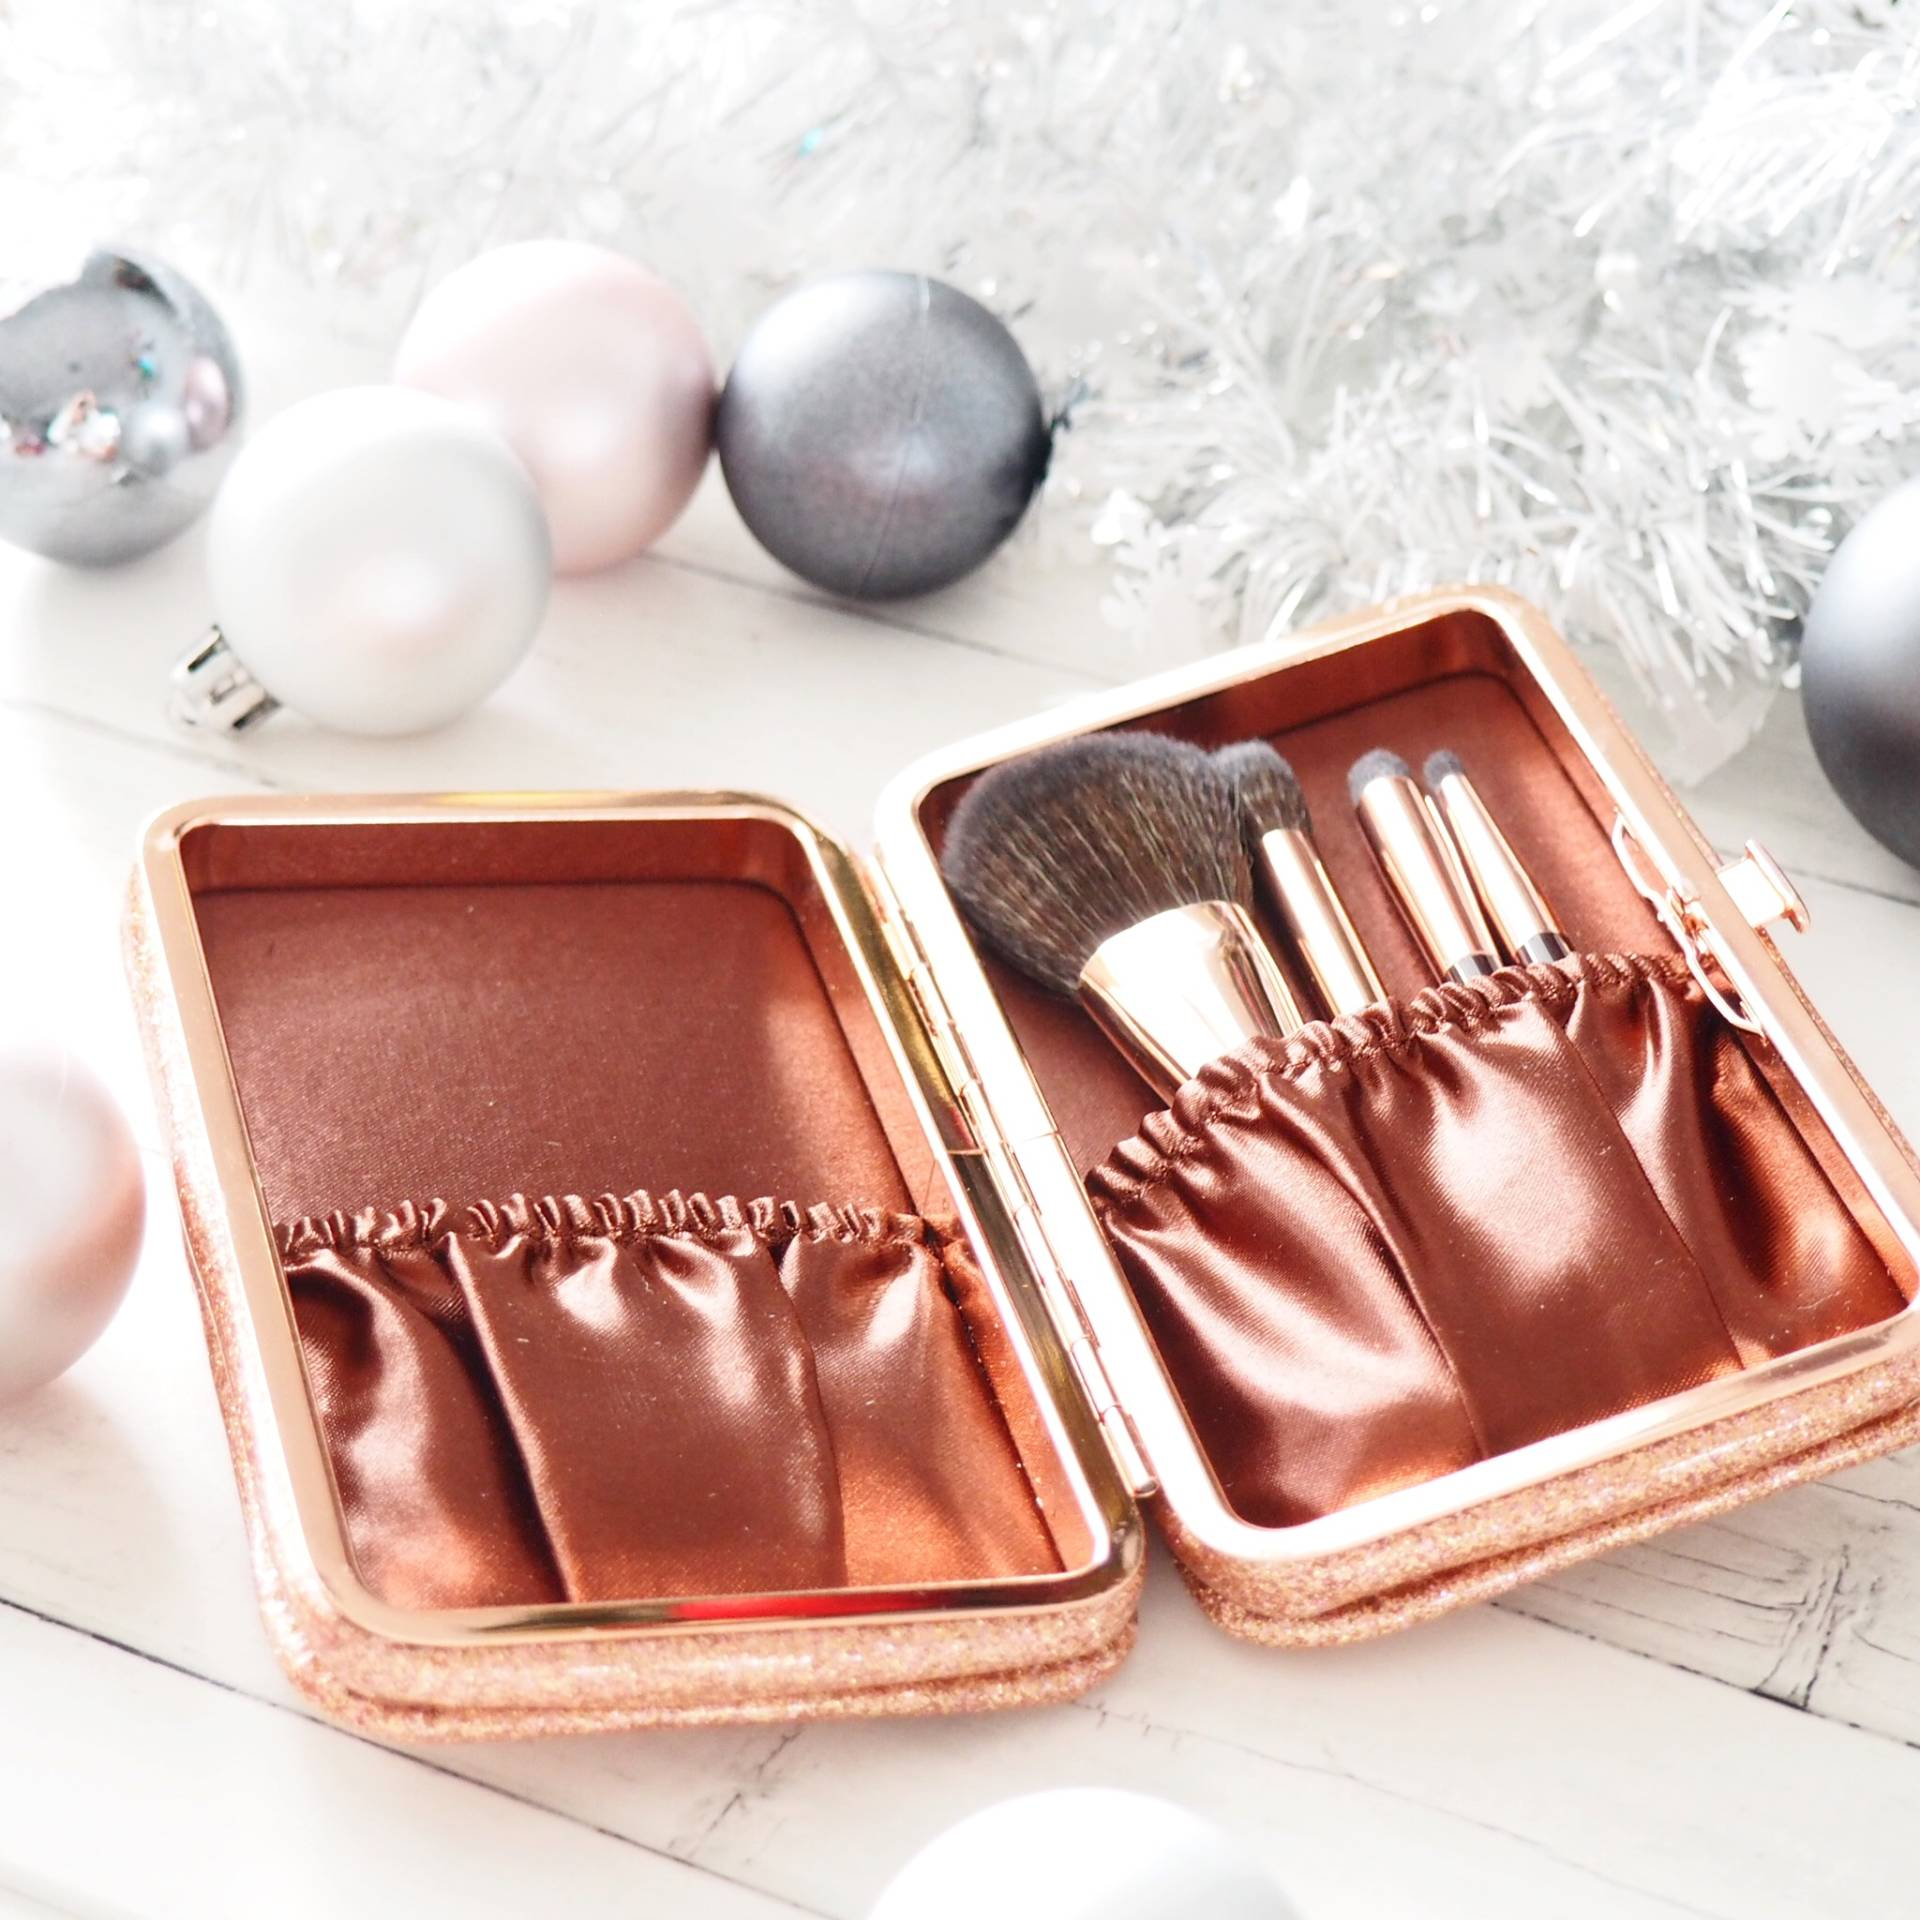 Charlotte-Tilbury_Magical_Mini_Brush_Set_Review